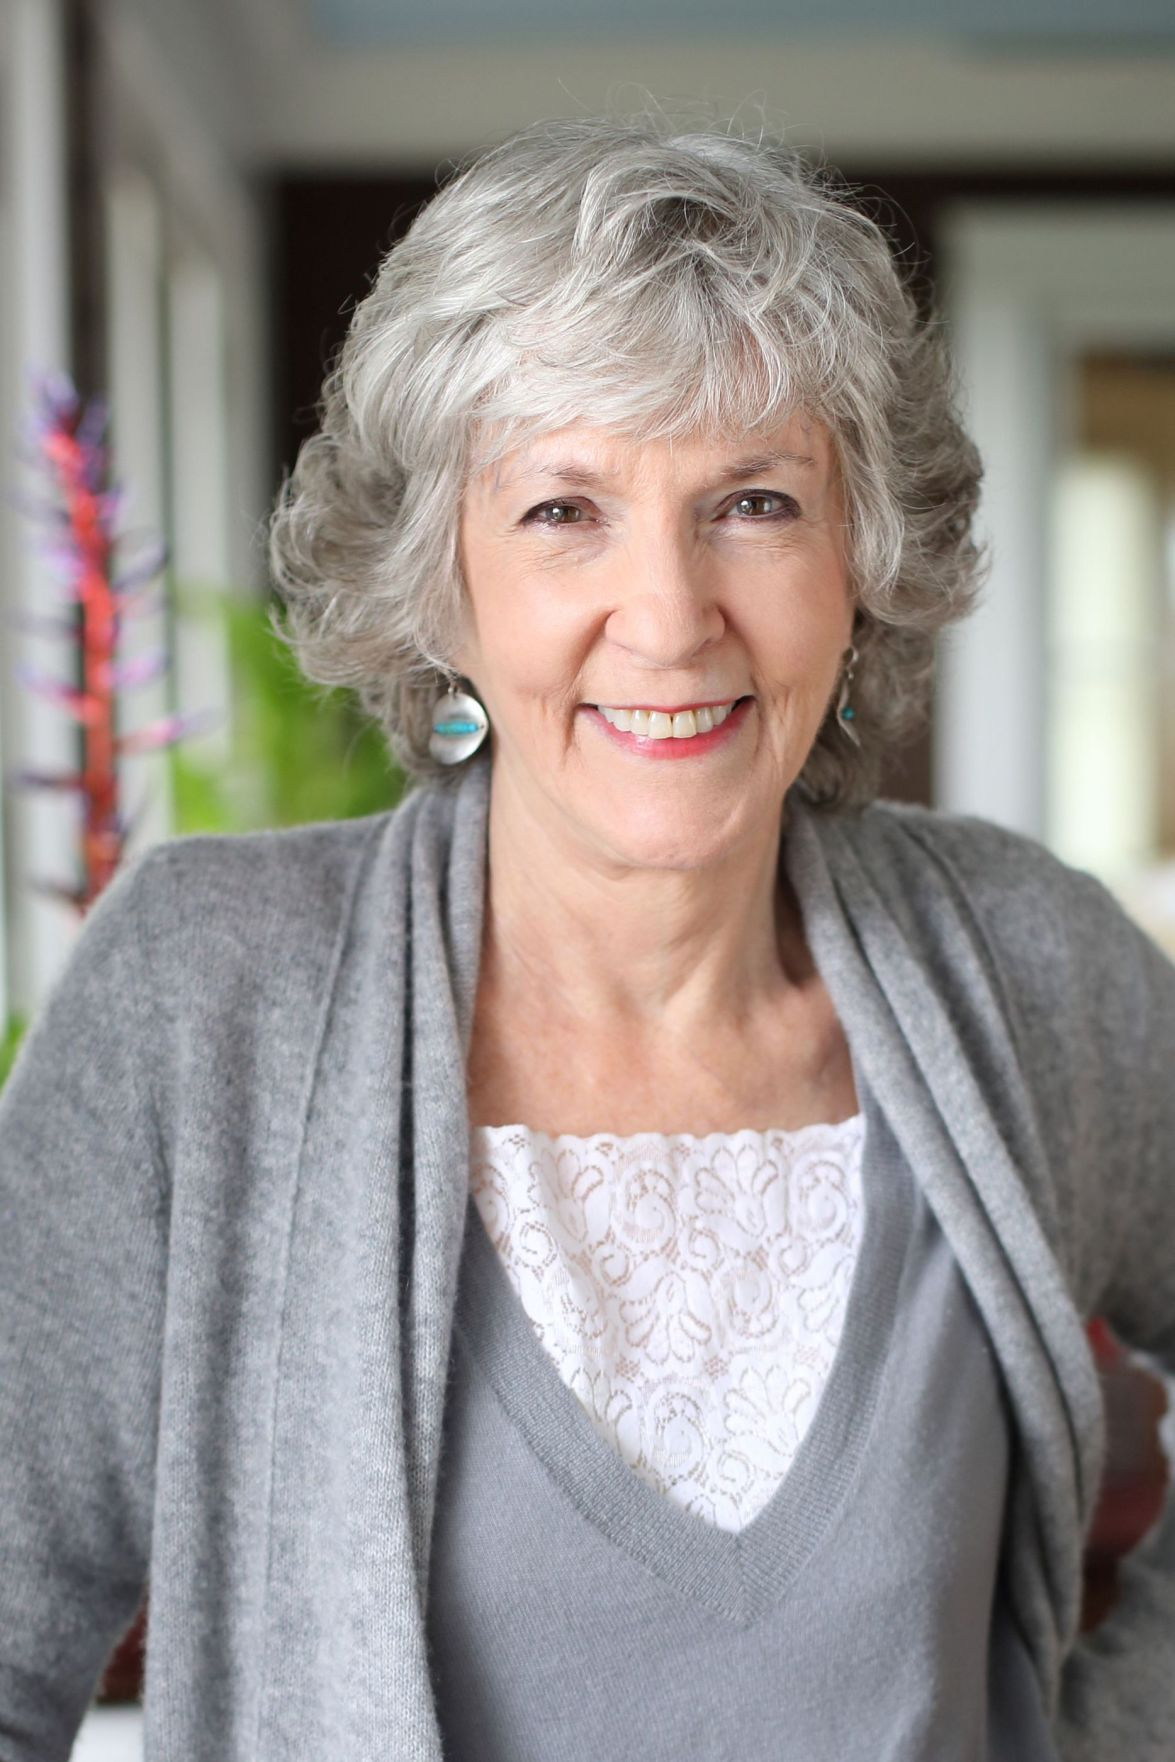 Sue Grafton to appear at Book & Author Luncheon